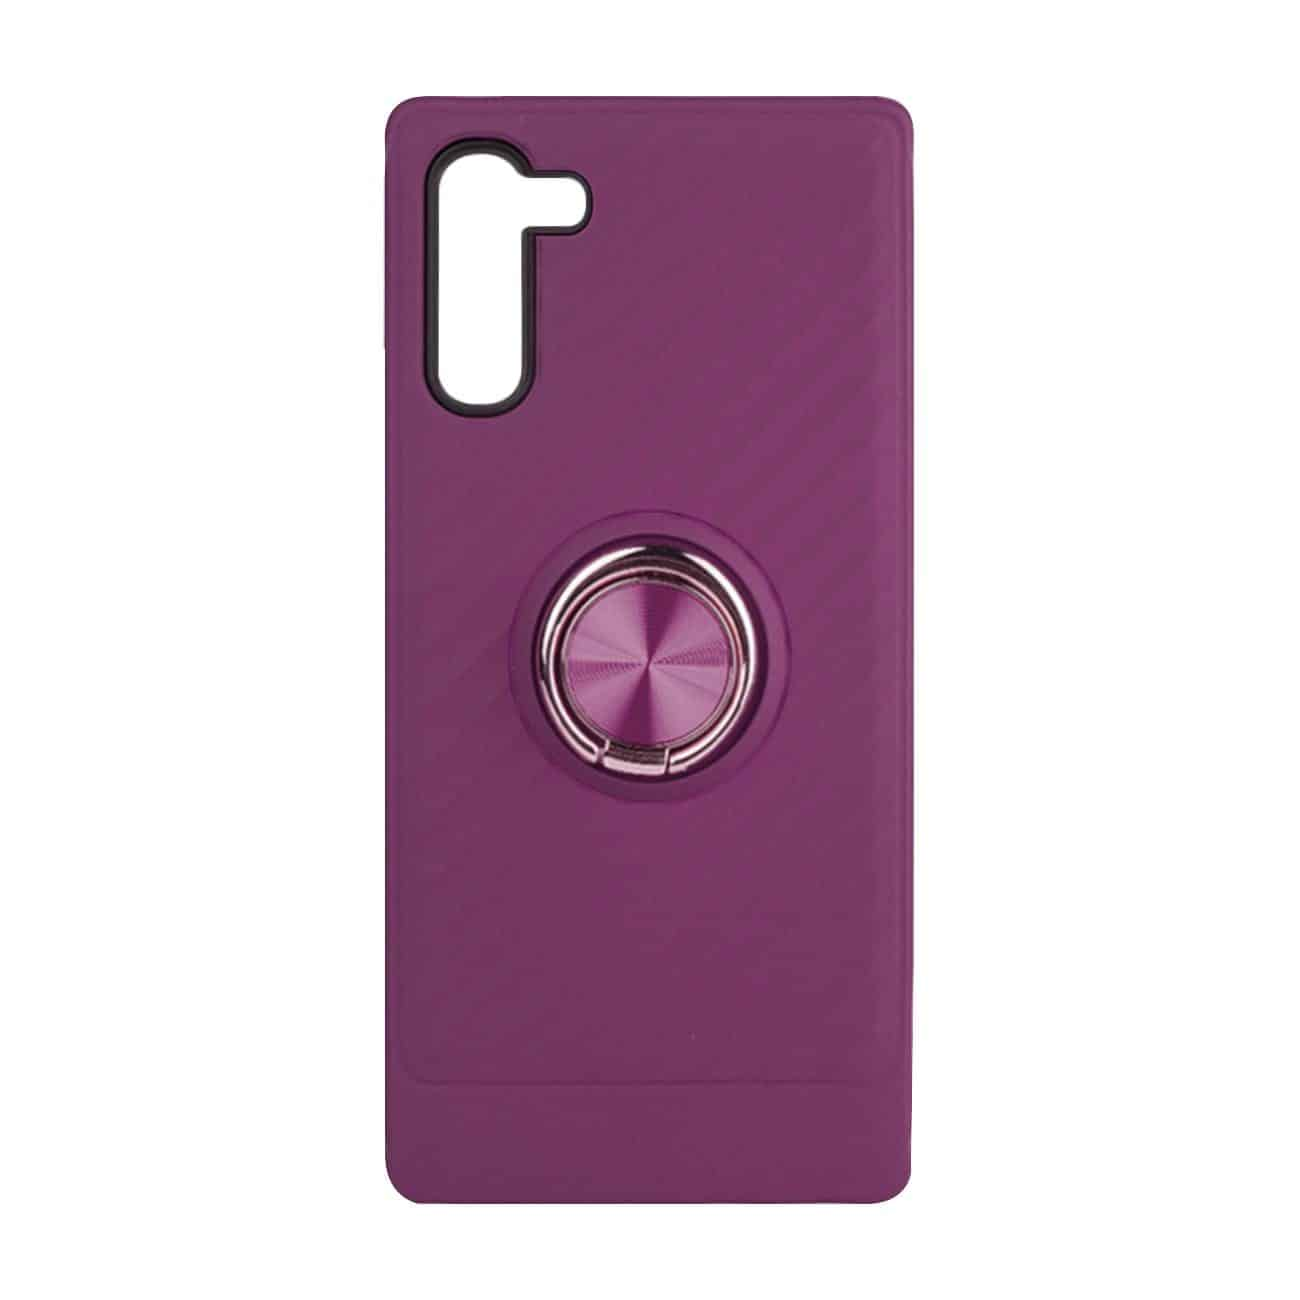 SAMSUNG GALAXY NOTE 10 Case with Ring Holder InPurple